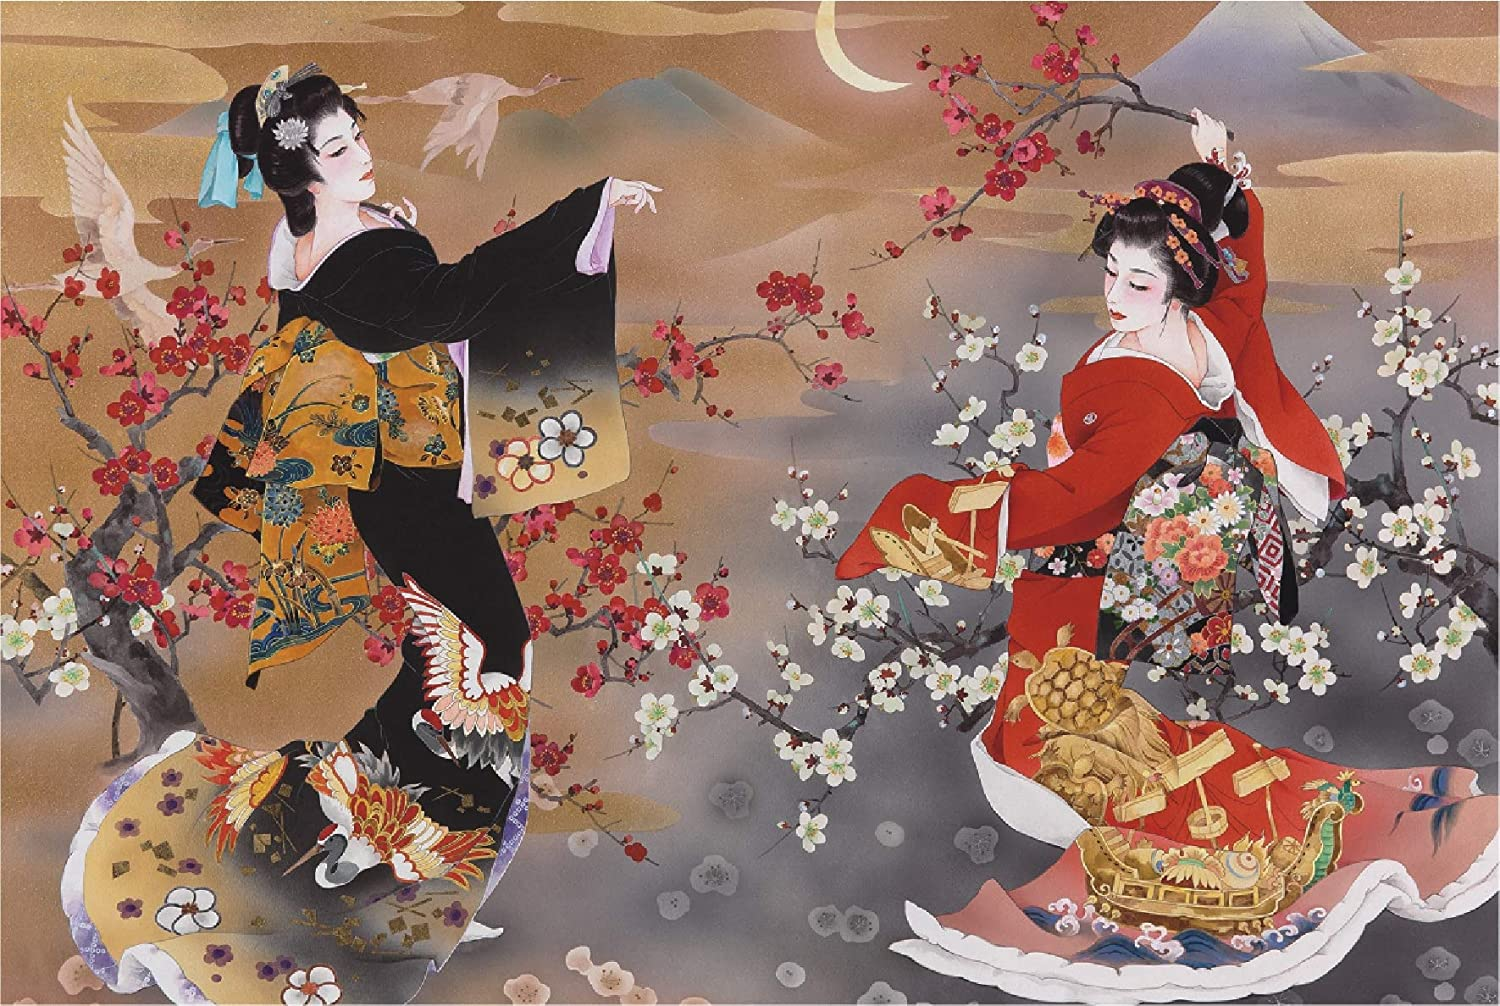 Funnybox Beauty Paintings by Haruyo Morita- Wooden Jigsaw Puzzles 1000 Piece Teens Family